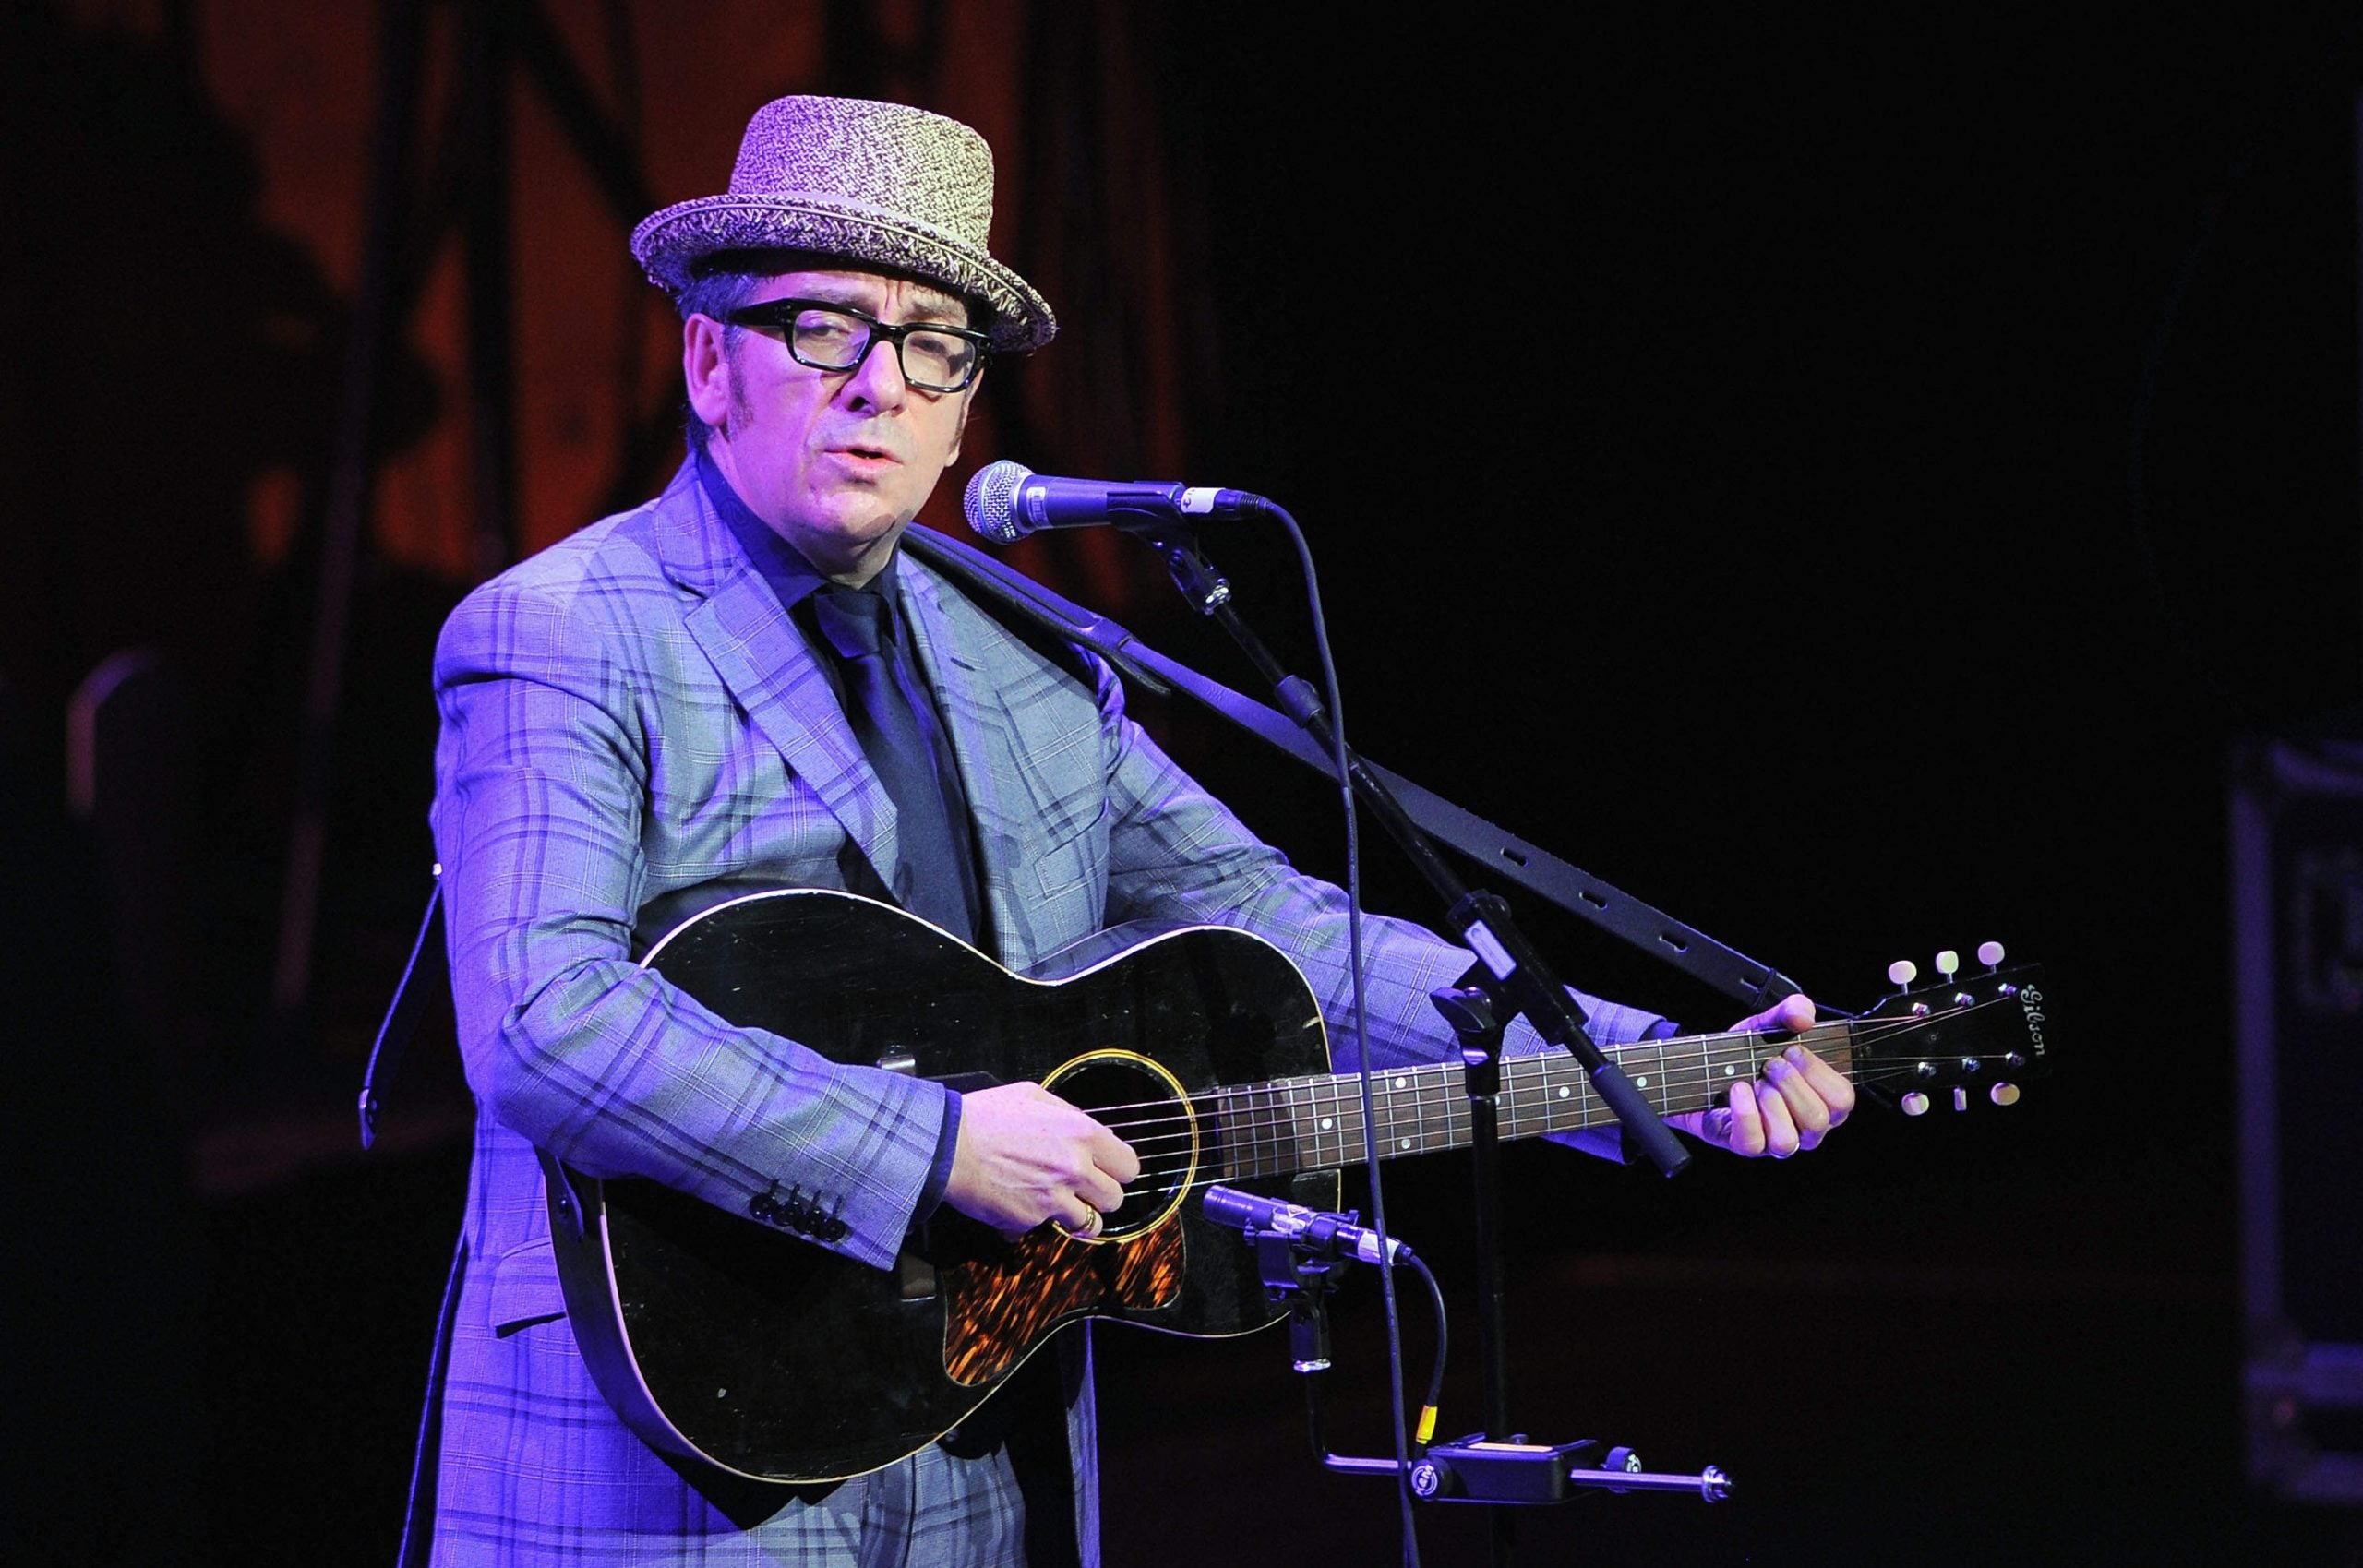 """Meg Rosoff on This Year's Model by Elvis Costello: """"My first rock'n'roll God"""""""